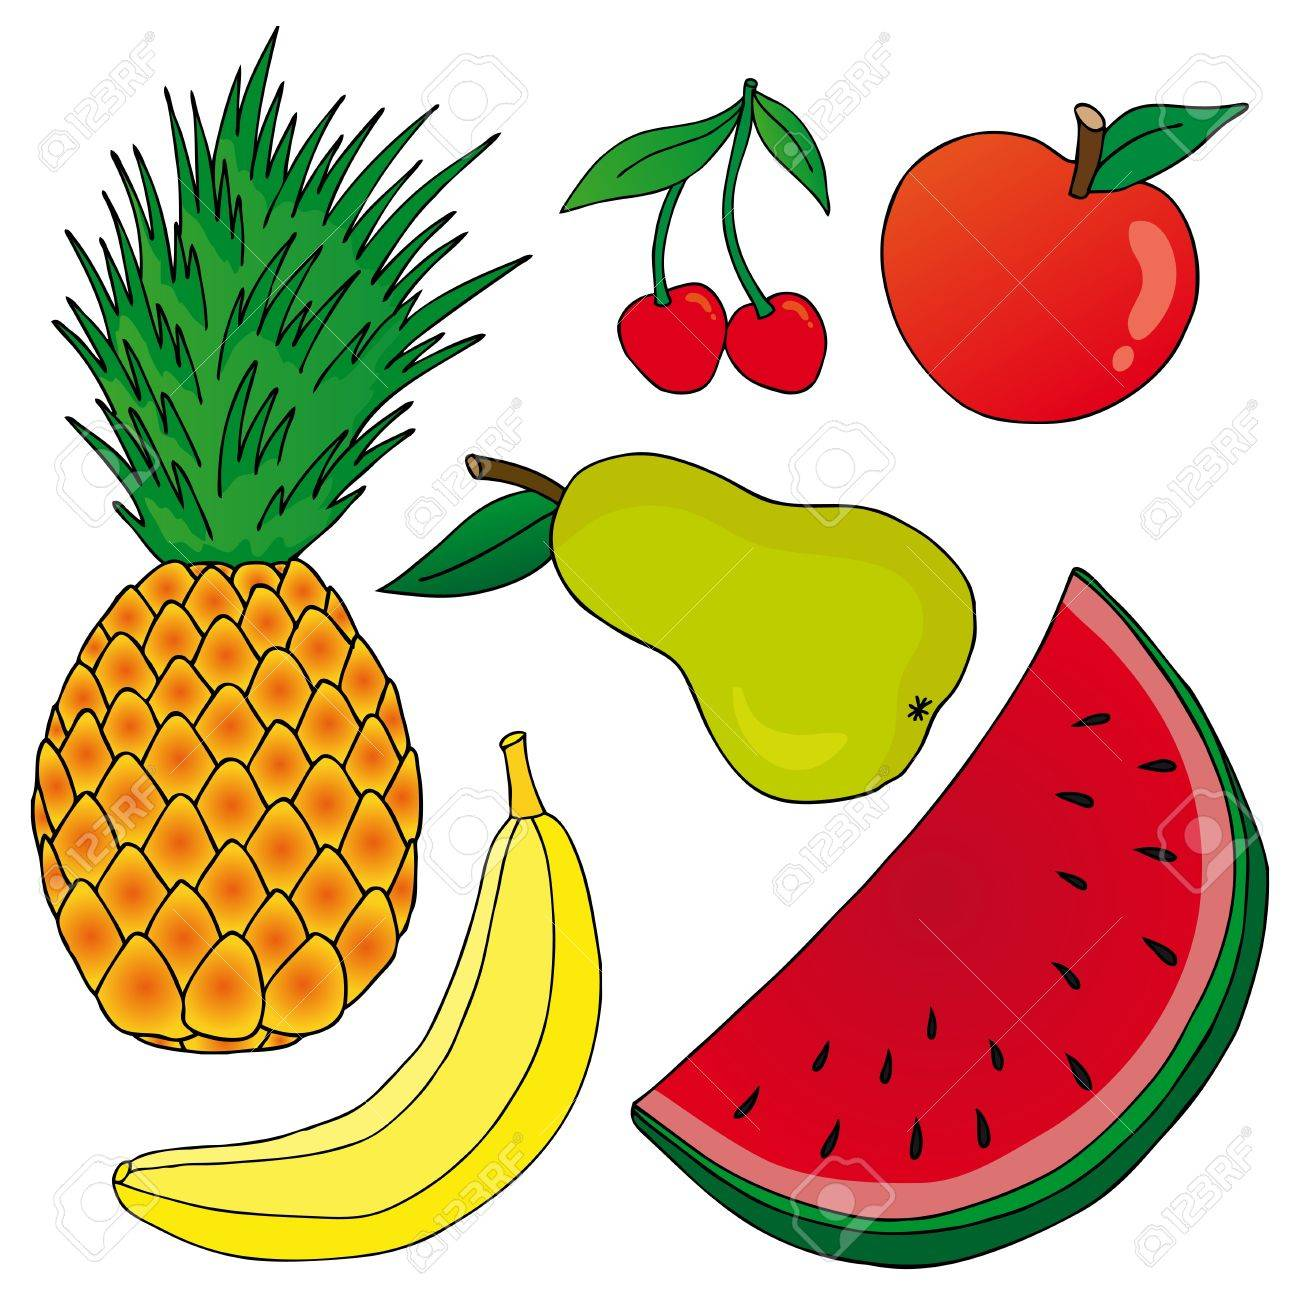 Fruits on white background Stock Vector - 17205774